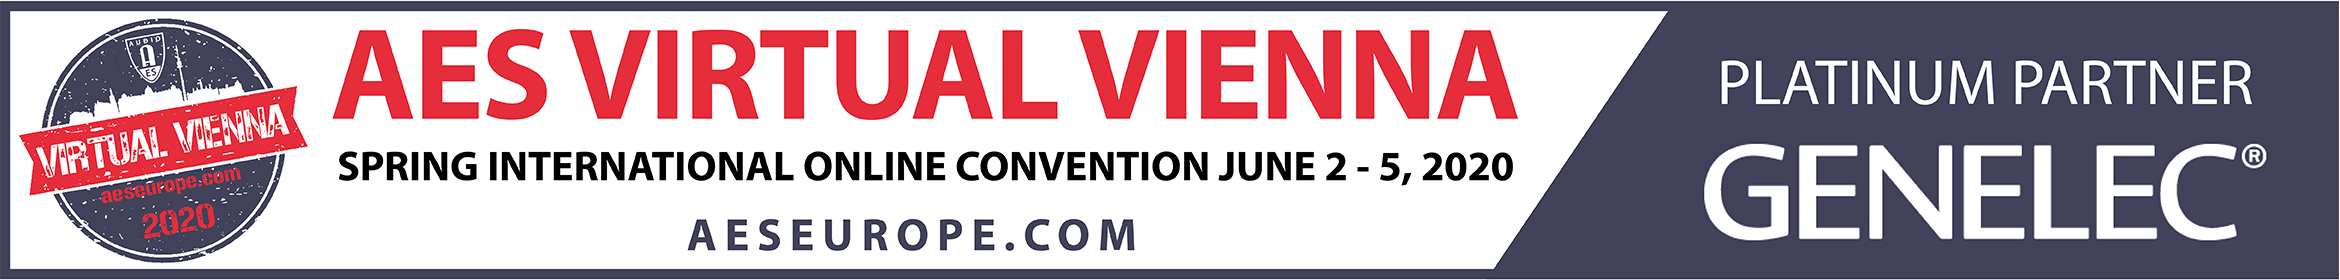 Virtual Vienna Convention Main banner